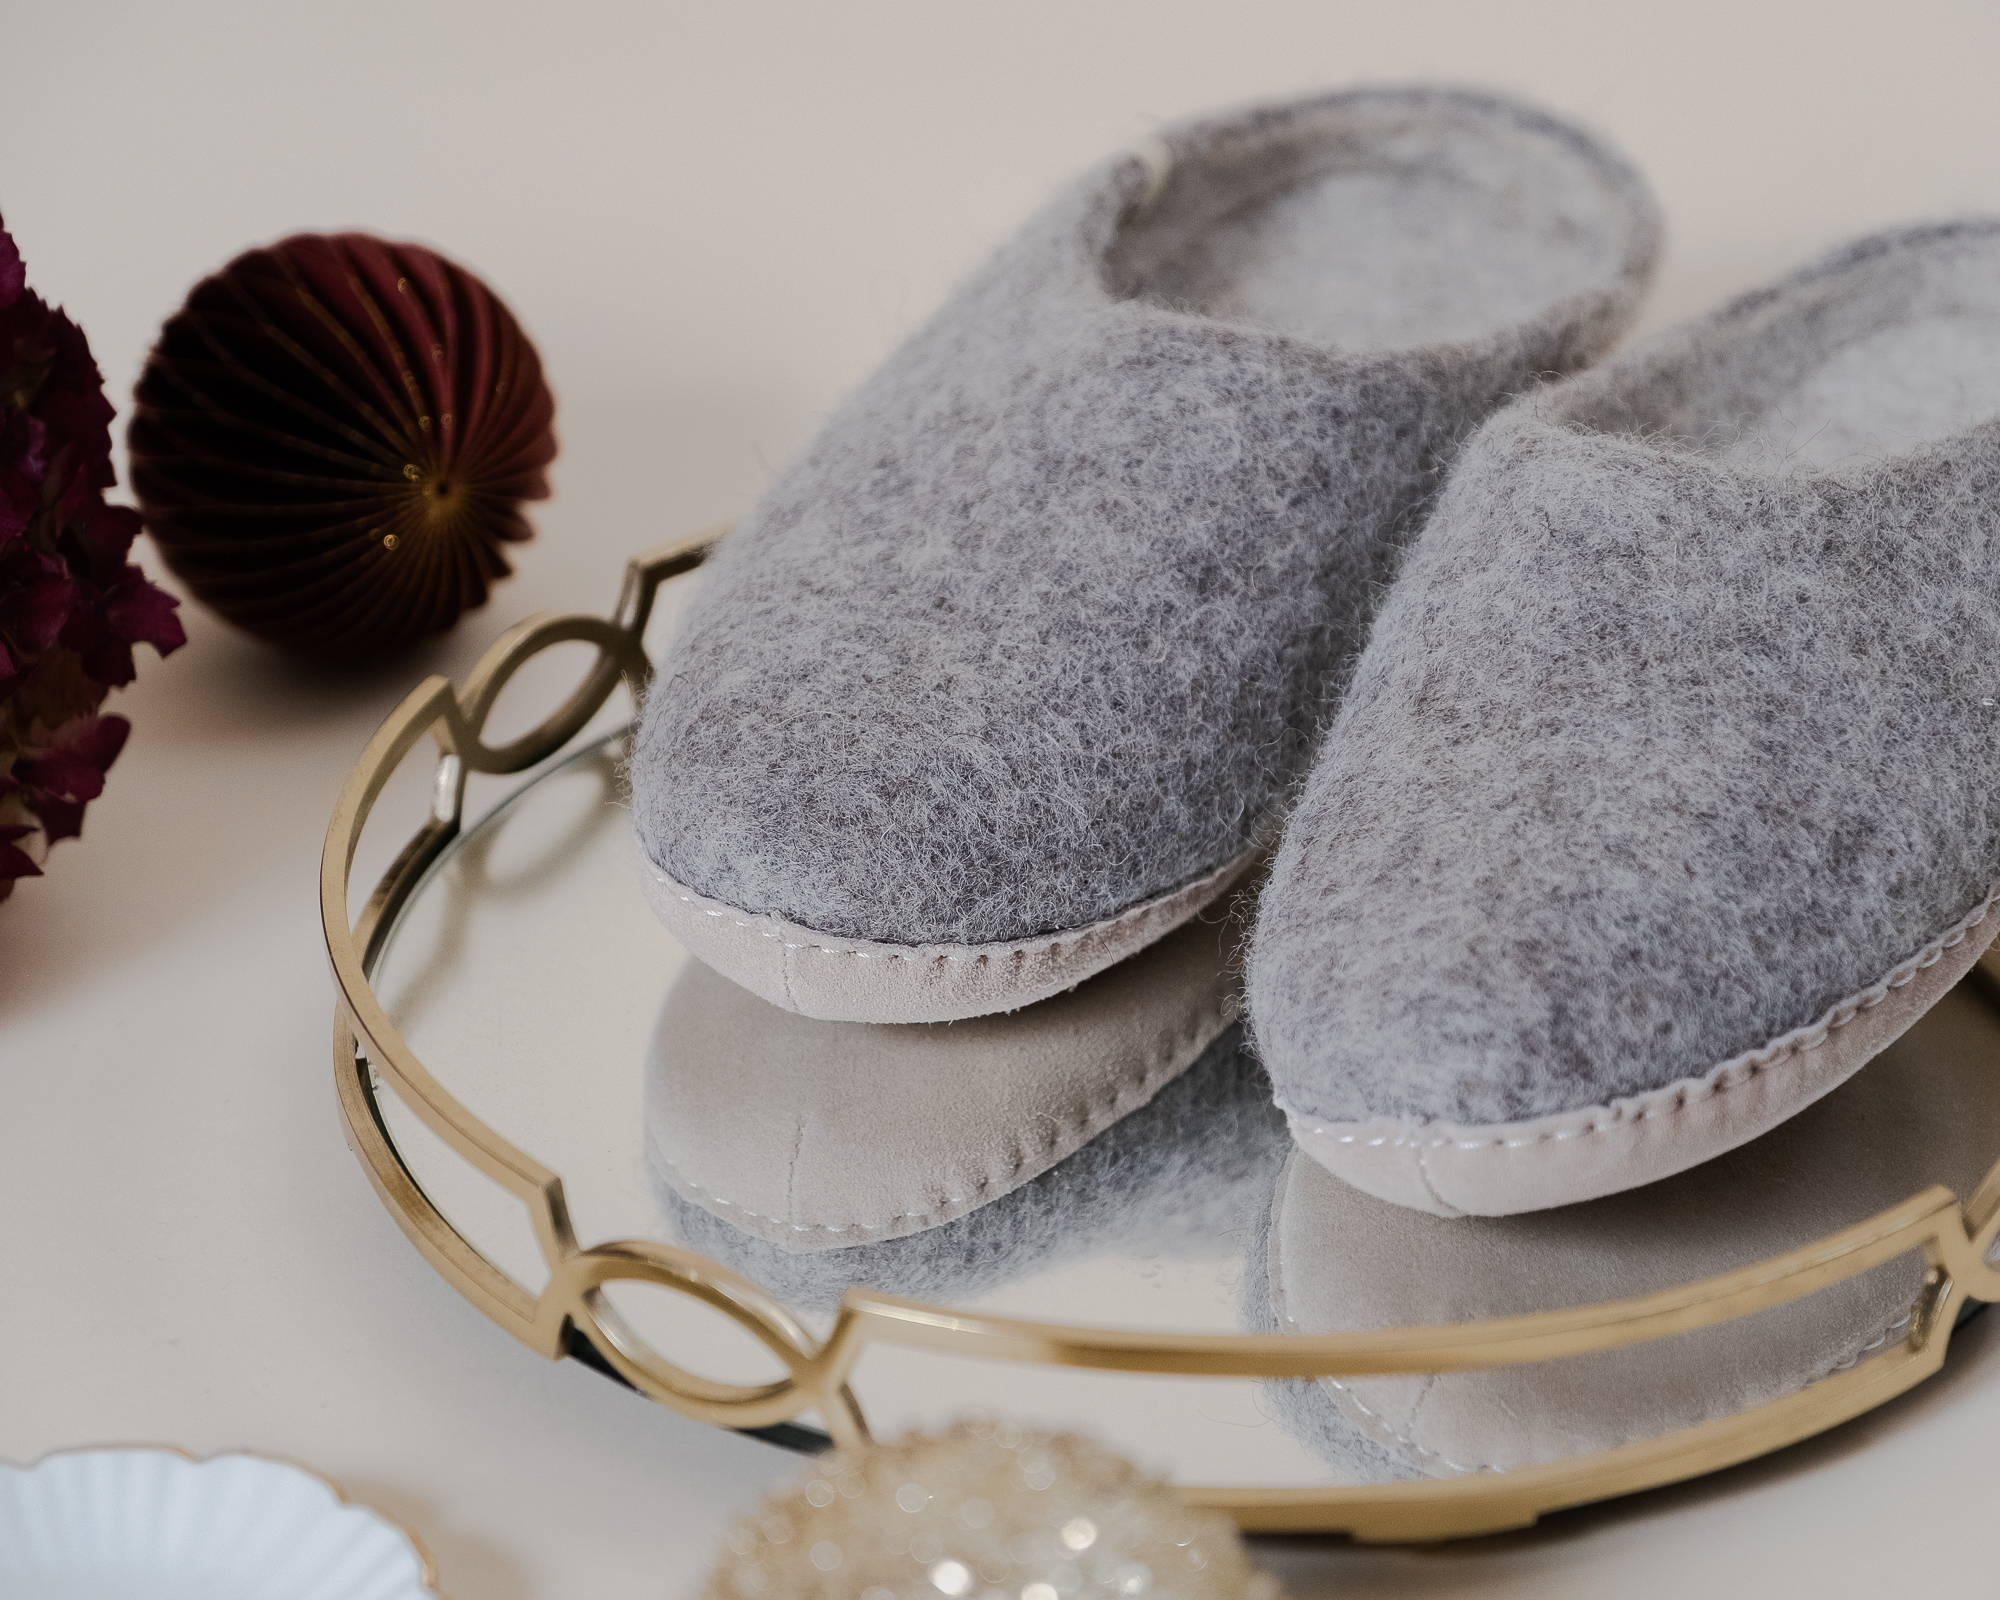 Shop Natural Wool Slippers from Sancho's, The Home of Sustainable Fashion in Exeter, UK